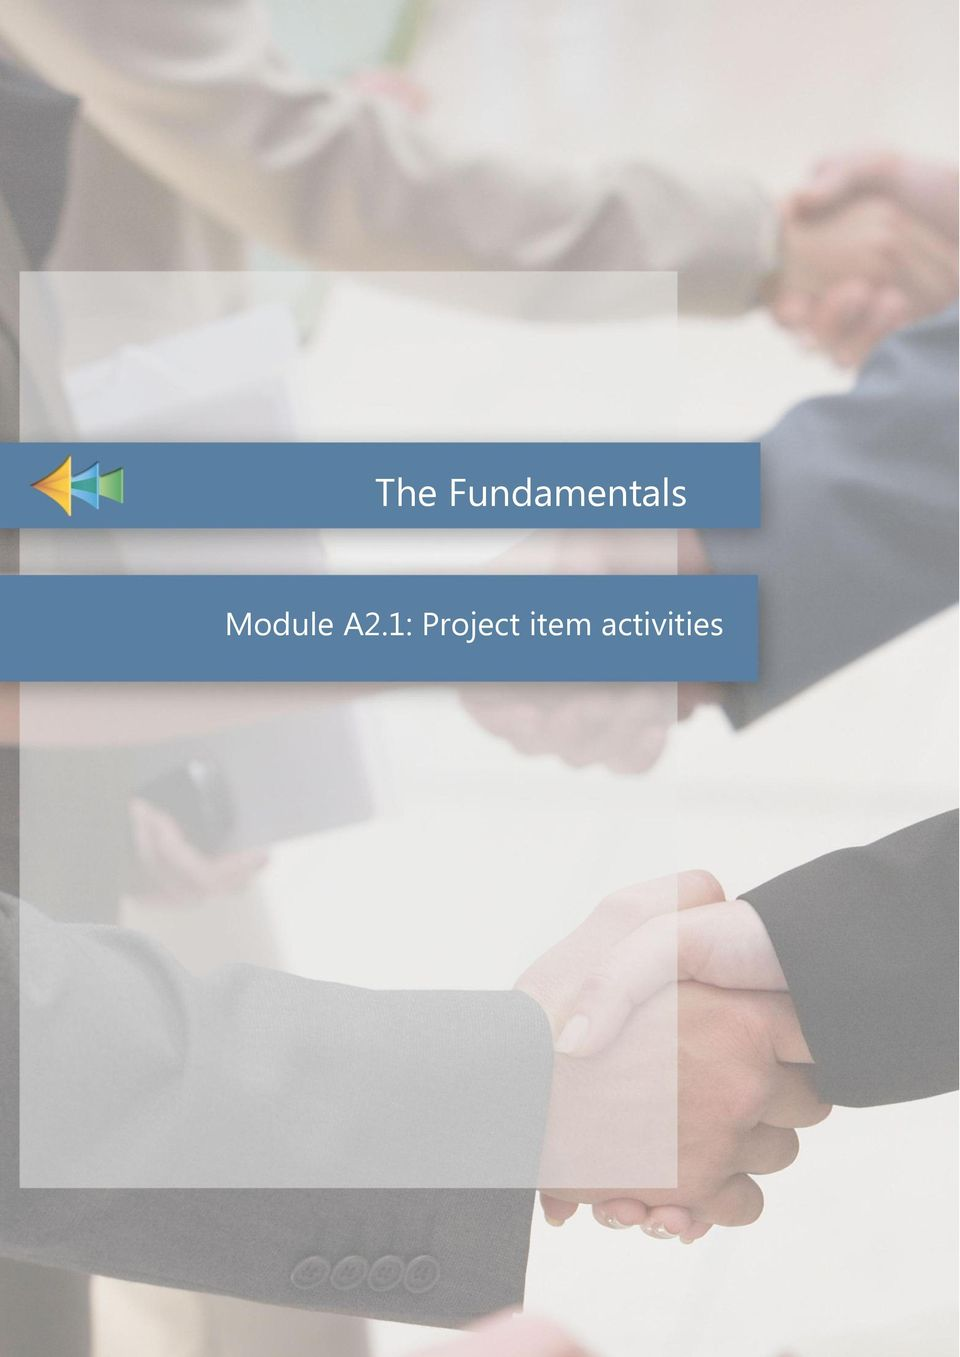 The Fundamentals Module